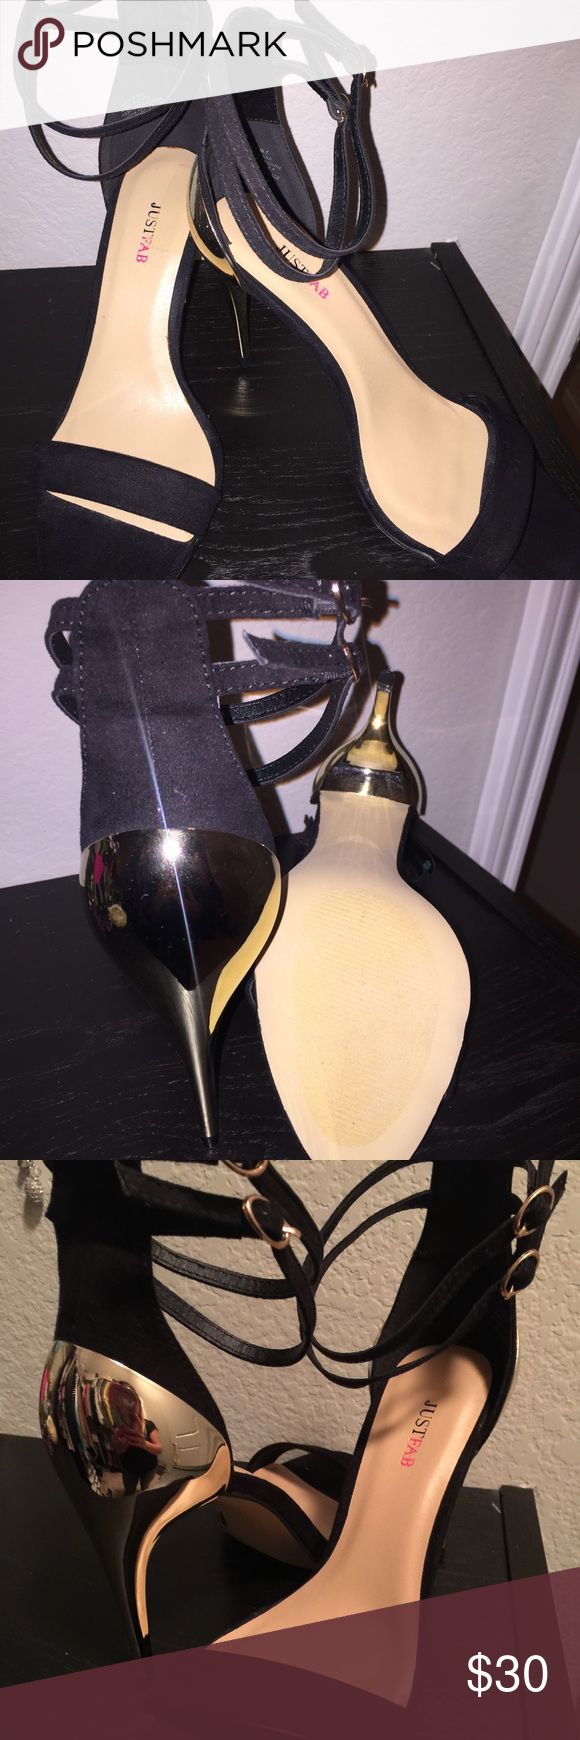 """Sexy black and gold strappy sandals Never worn - Very sexy black and gold sandals. They have a double ankle strap and gold 4"""" heel. A definite wardrobe stable! JustFab Shoes Sandals"""